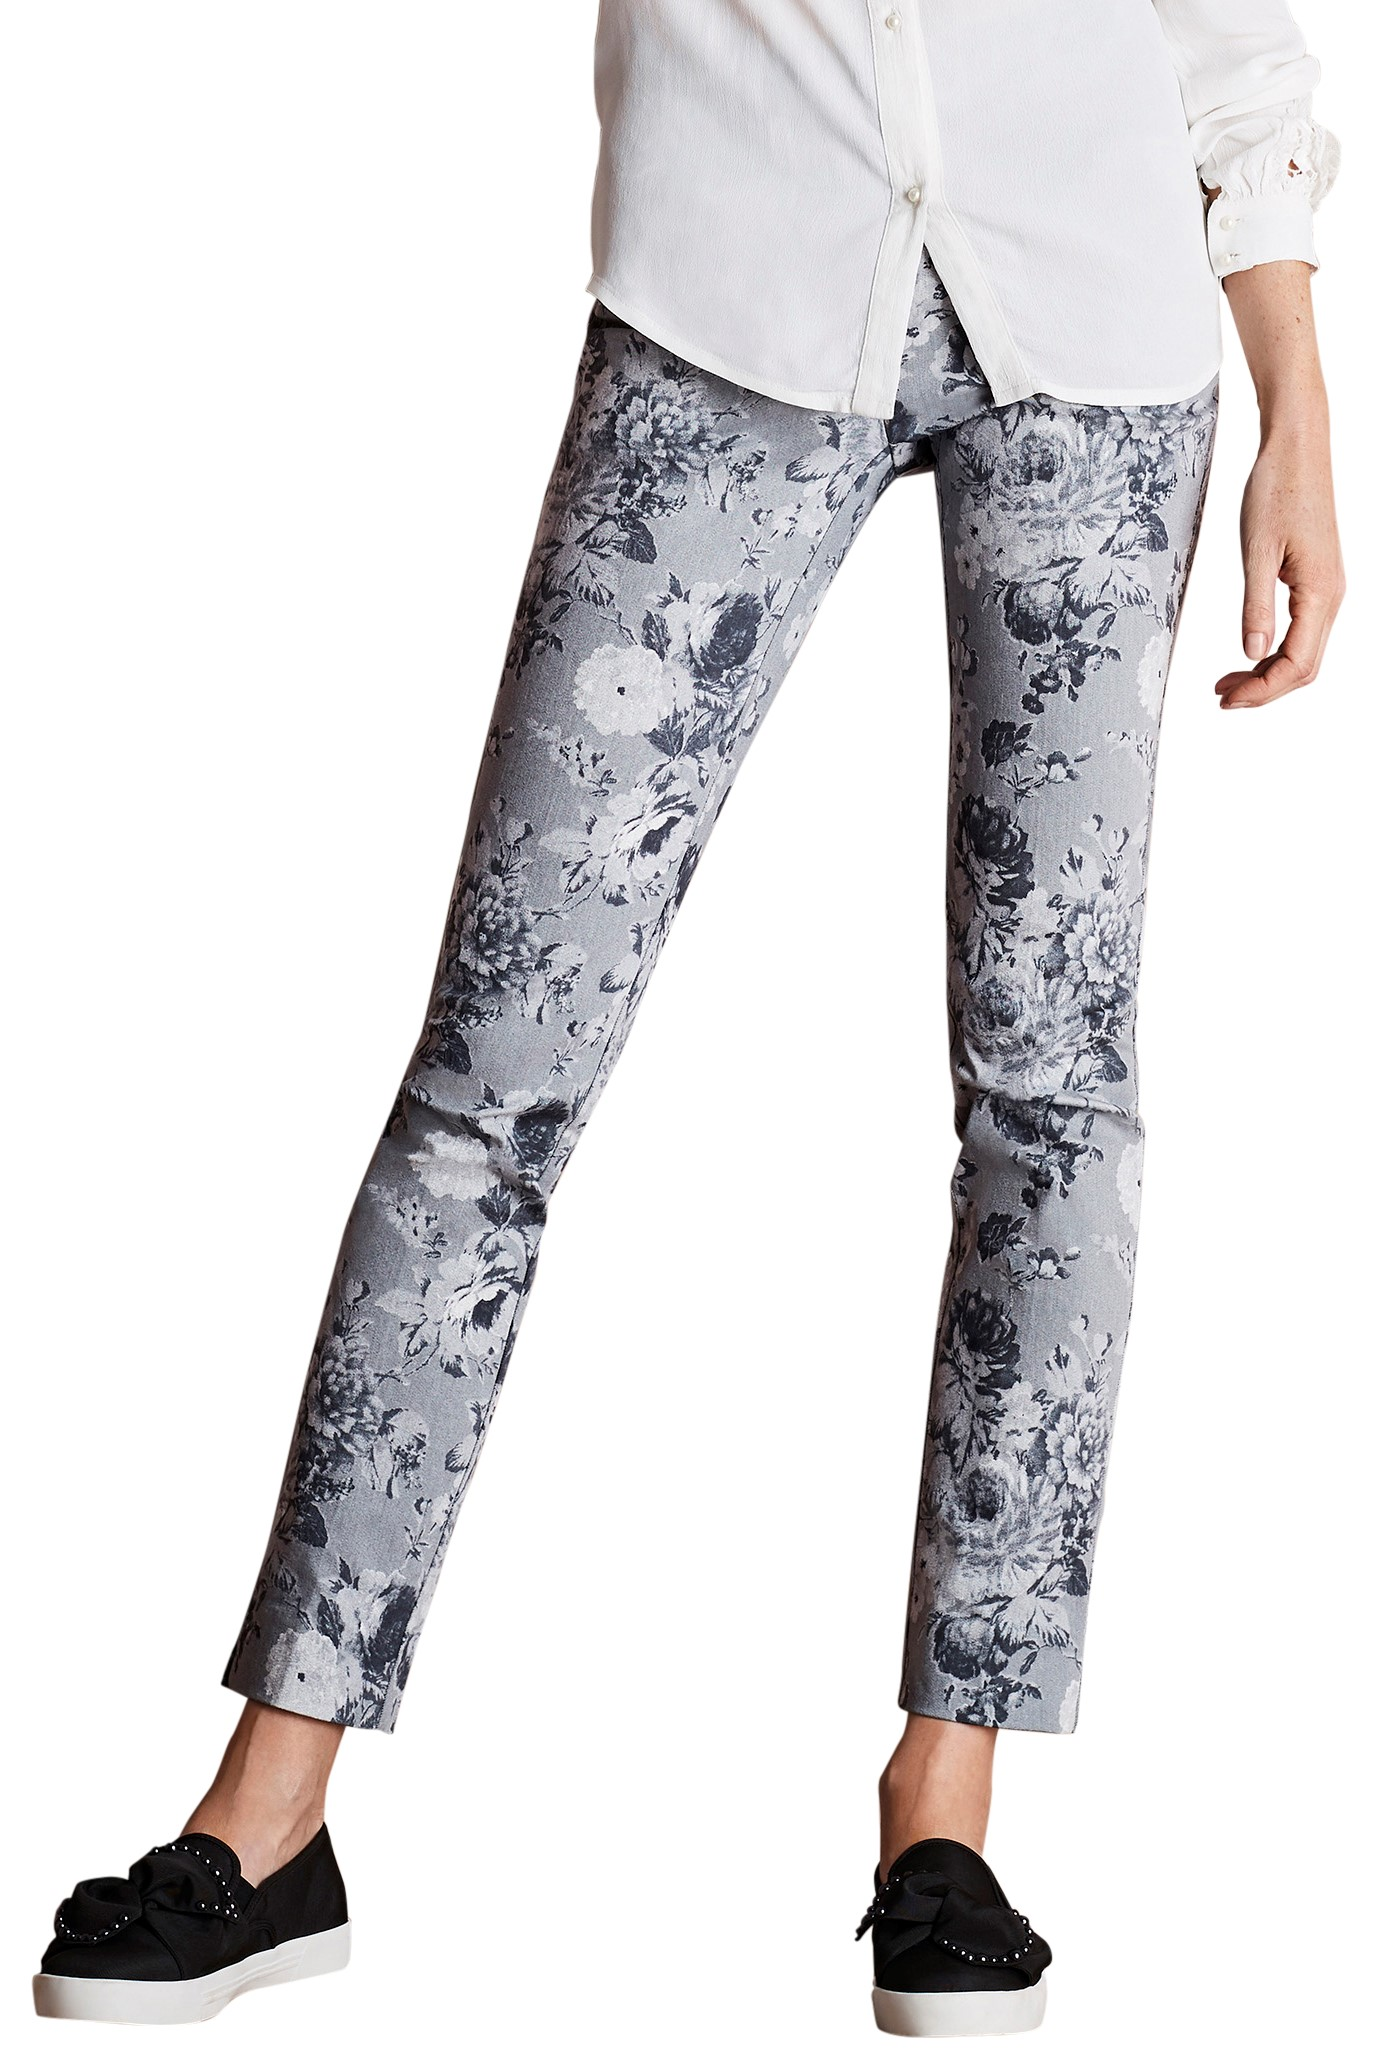 4eca760baa Lisette L. Slim Ankle Narrow Pant Style 40455 Sepia Floral Print CP Twill  Color Grey